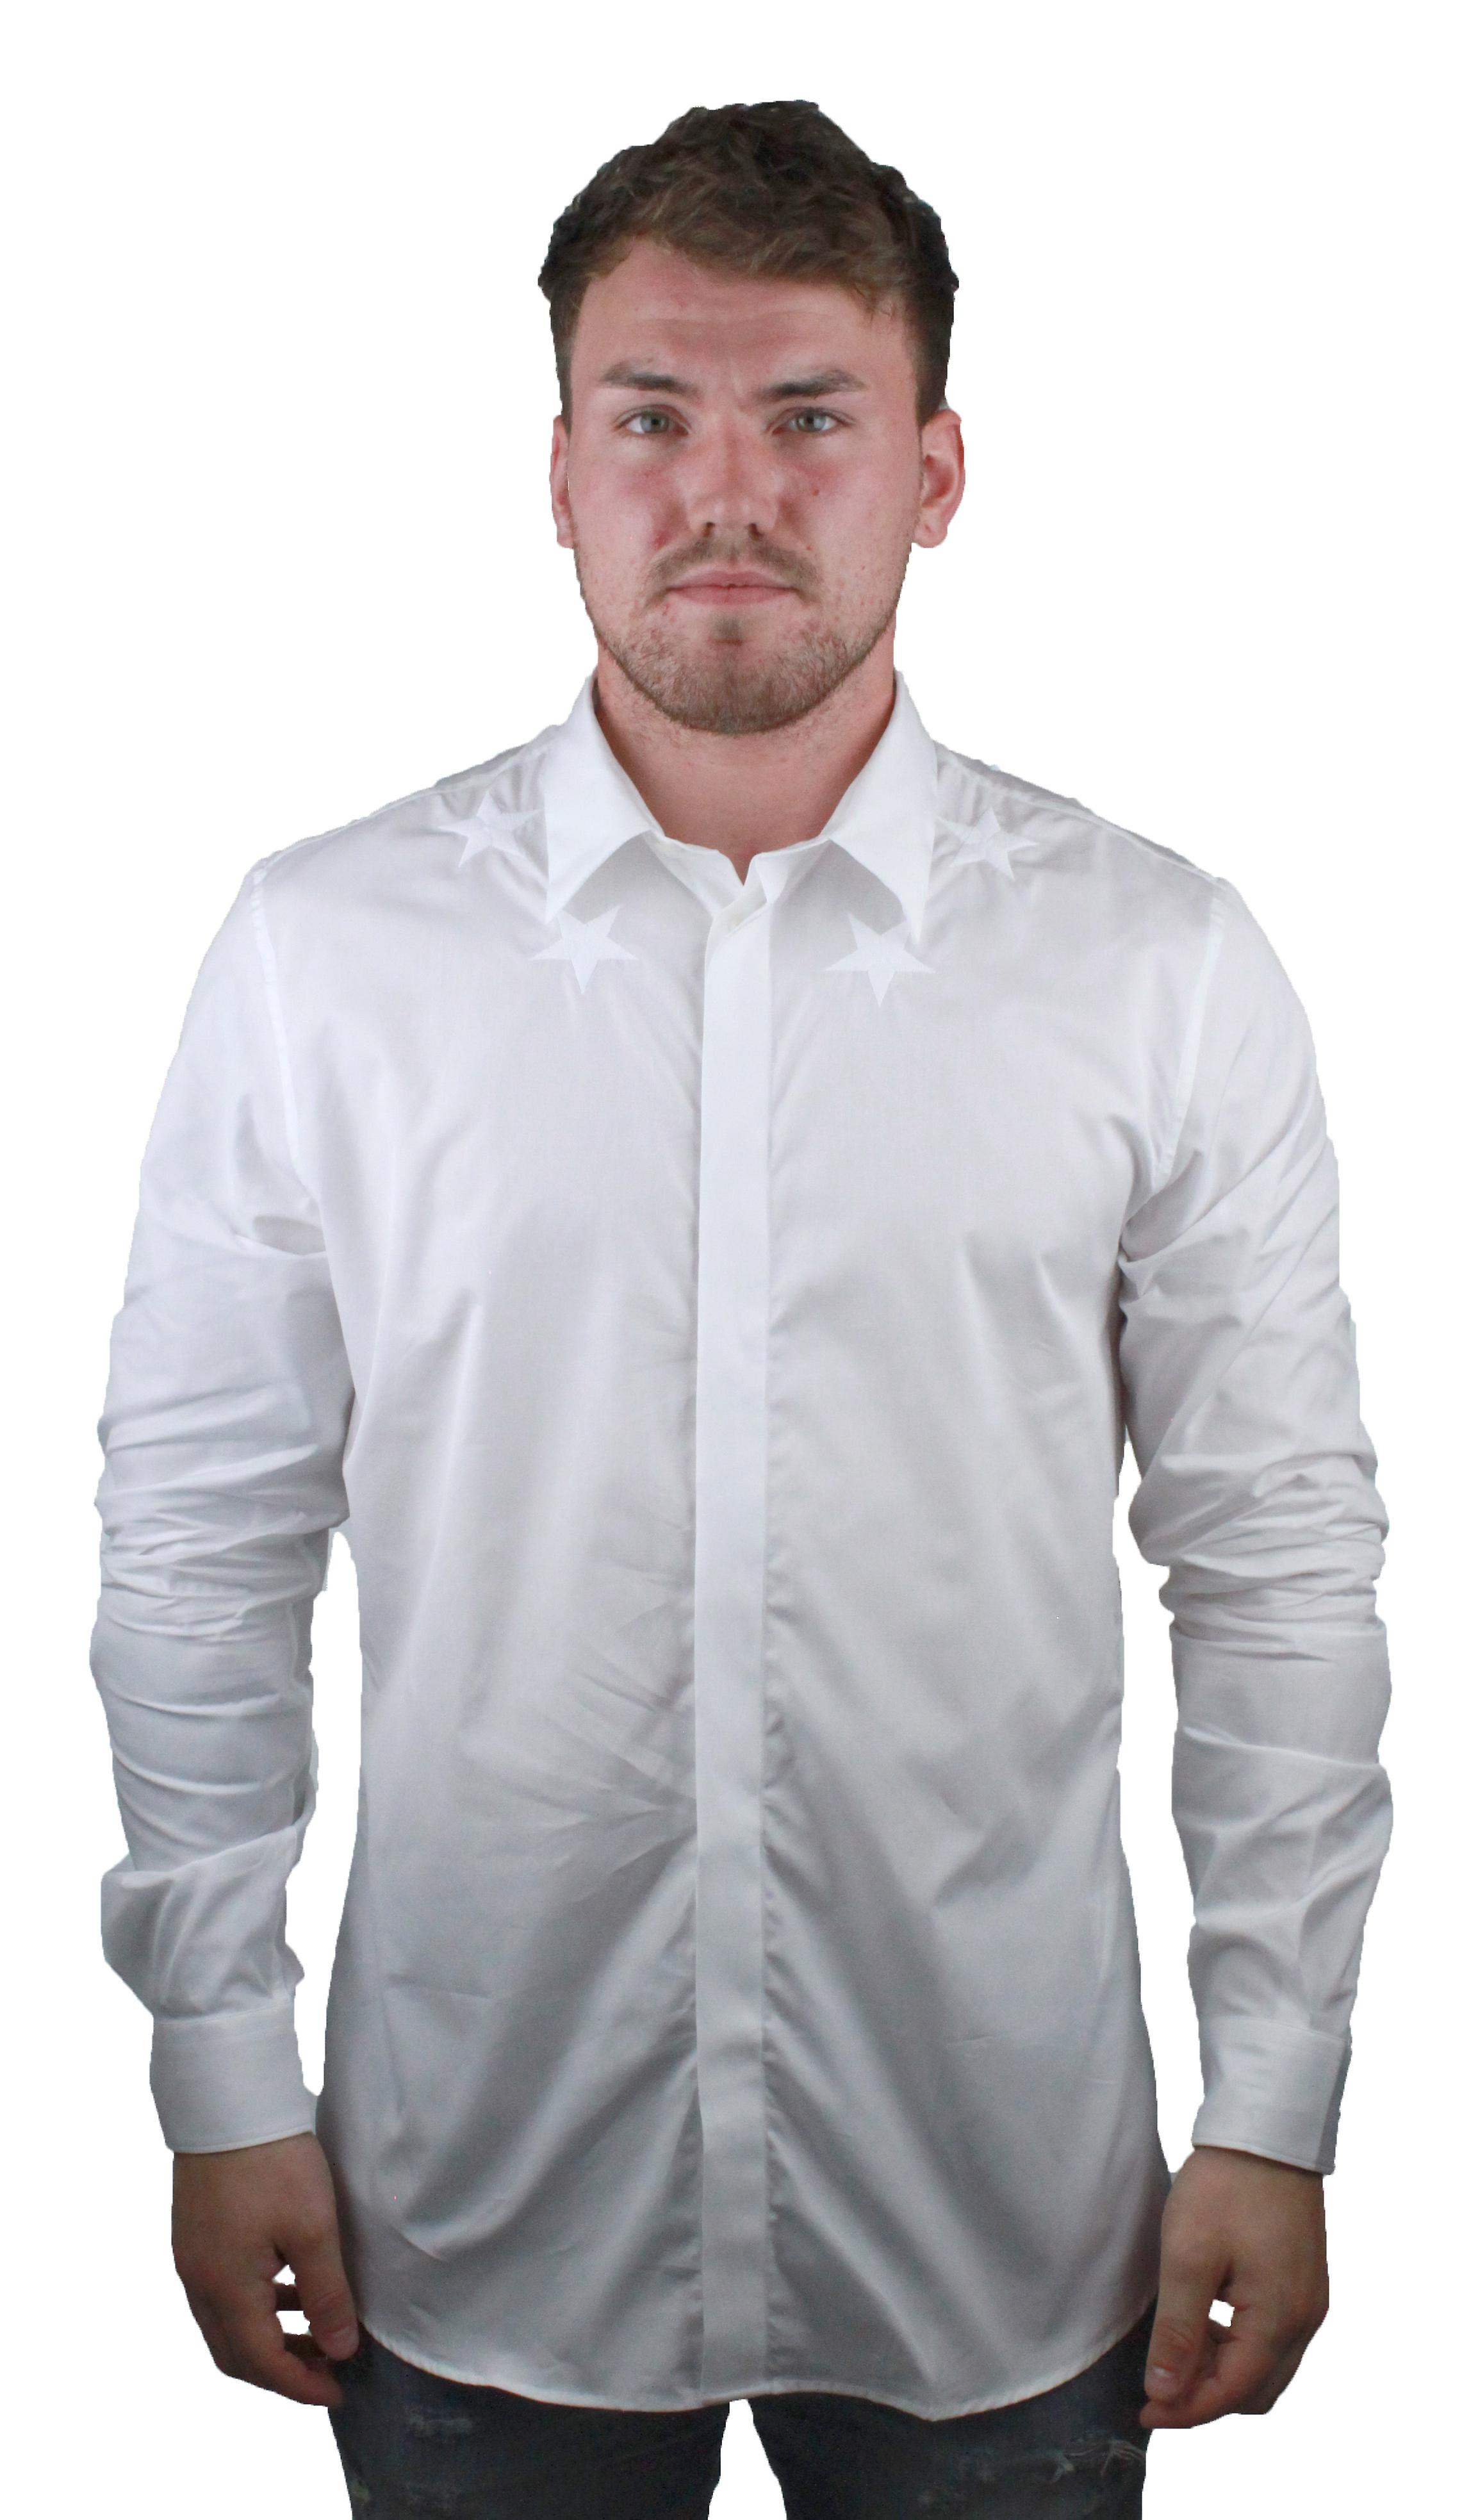 new product d095a 3ff6a Givenchy BM601C1Y39 100 Herren weißes Hemd